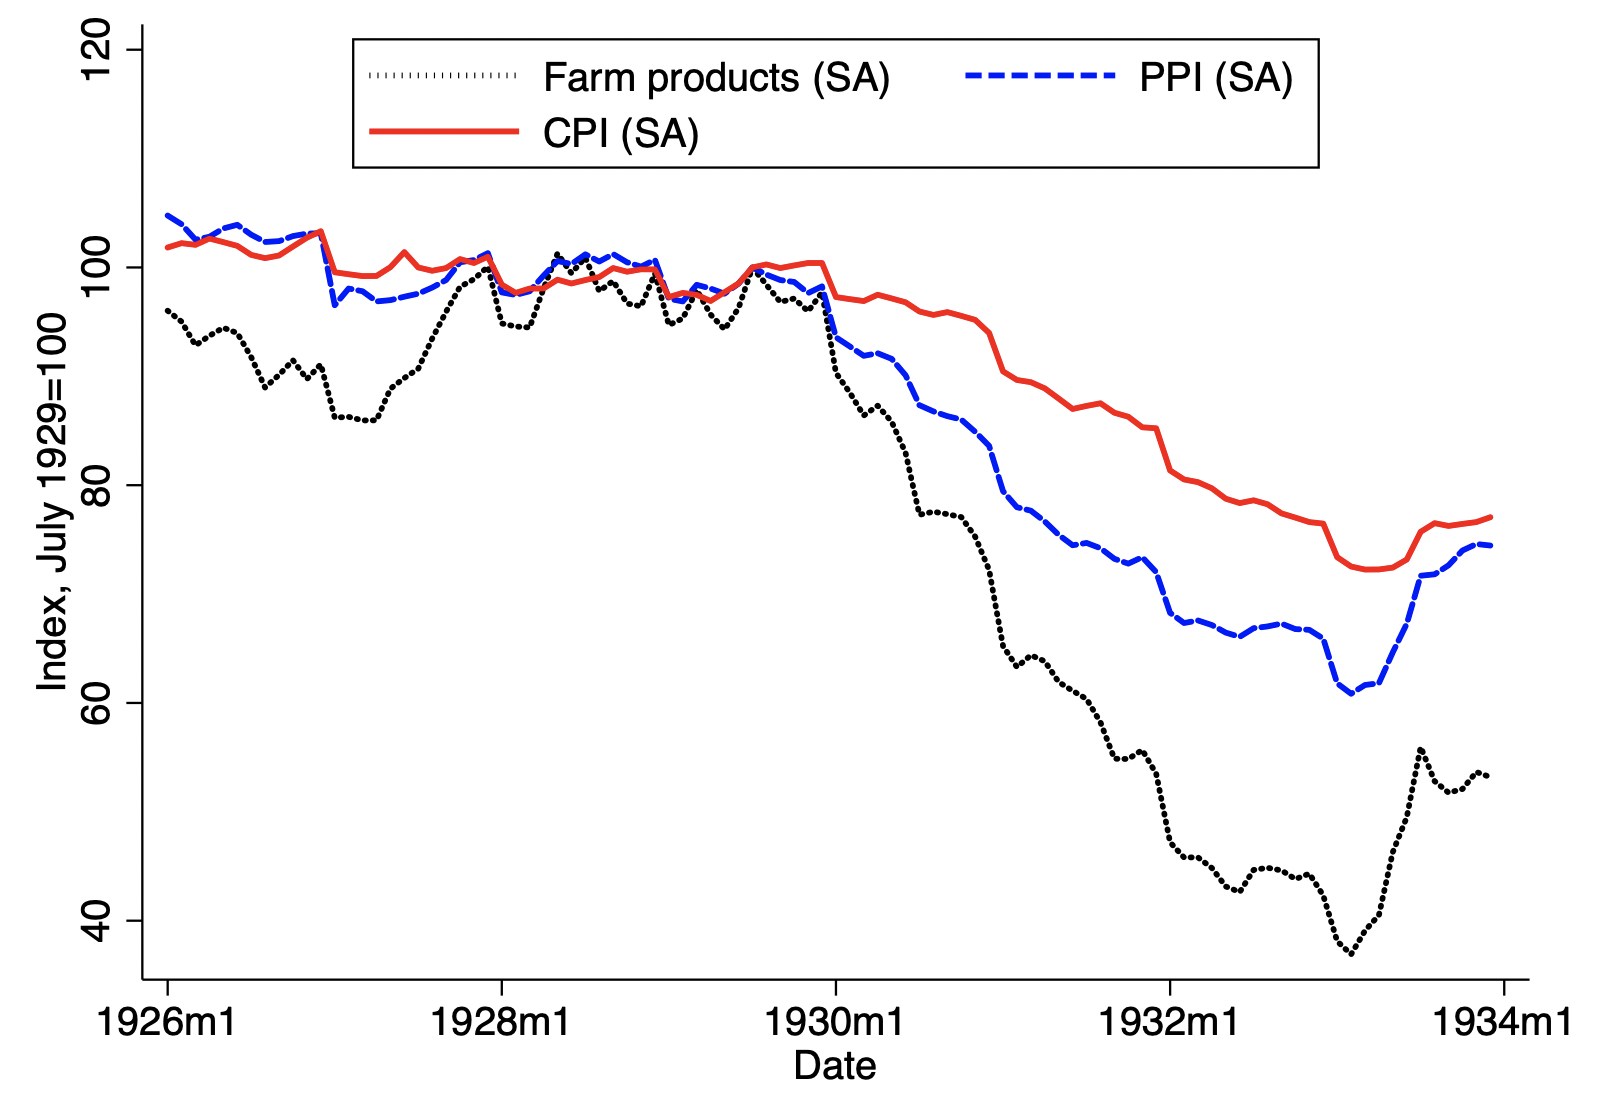 Farm product prices, redistribution, and the early Great Depression in the US 1